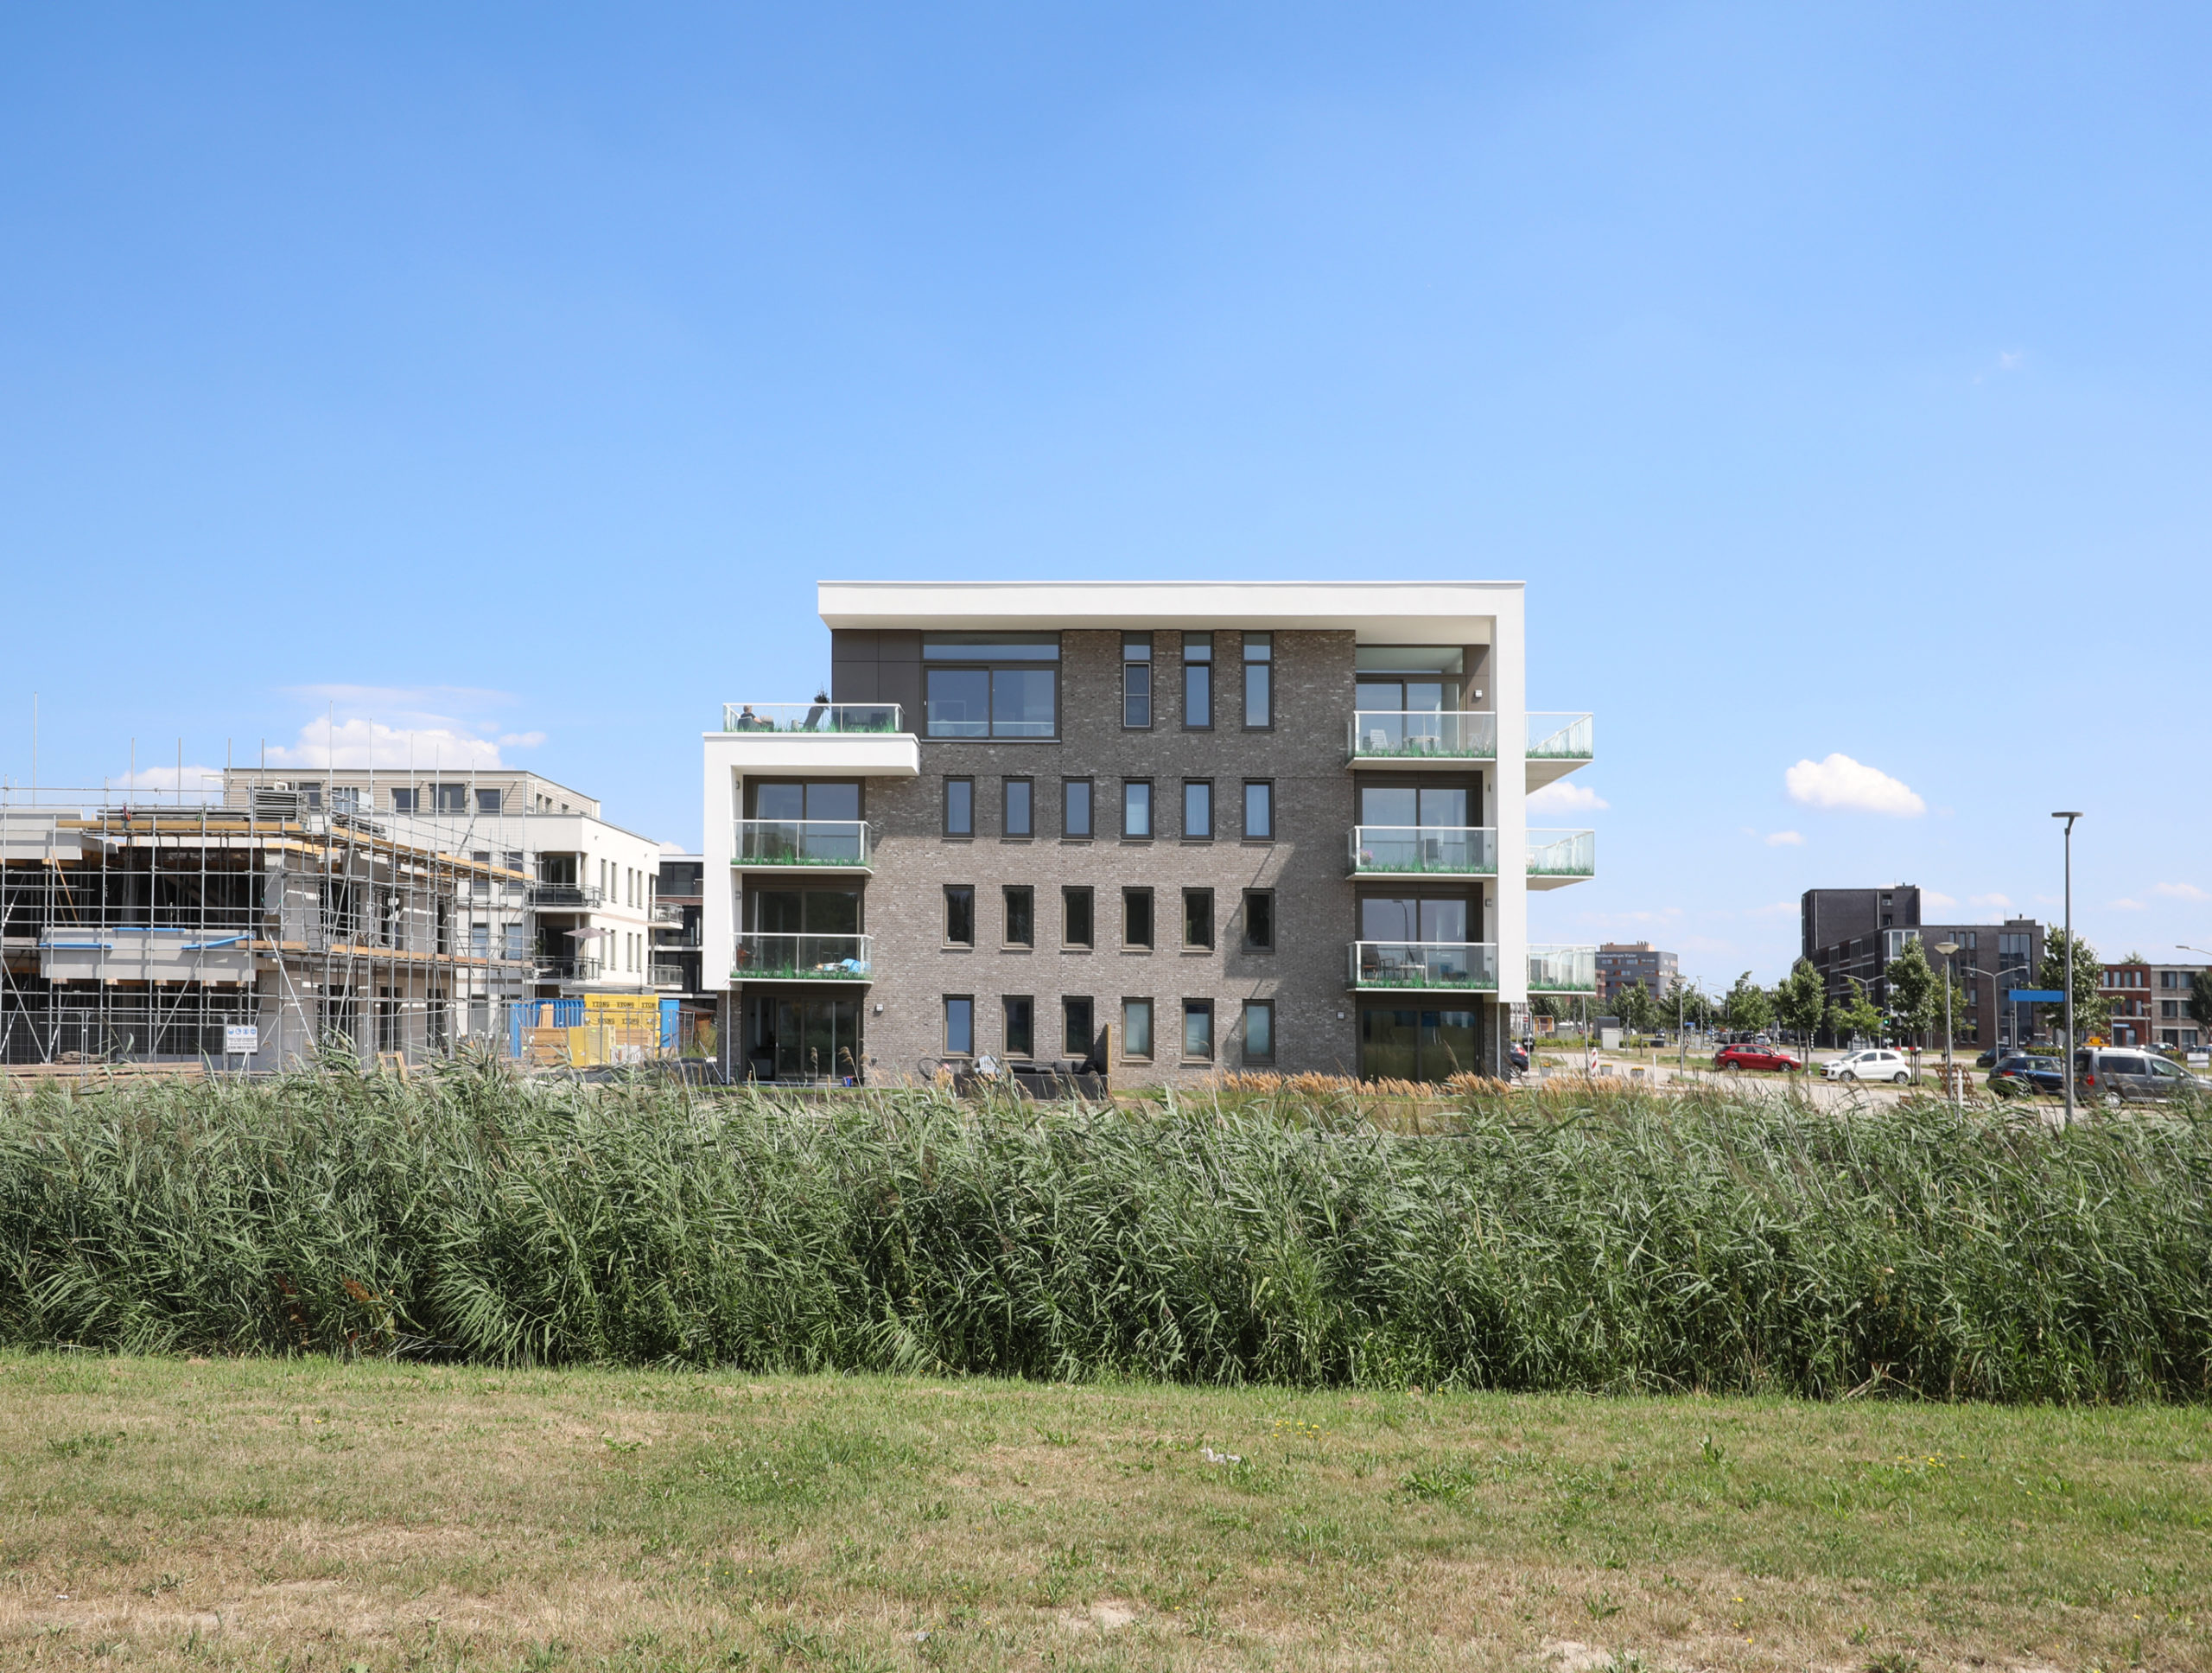 Appartementen complex Freestate Building Almere Poort | Olof Architects